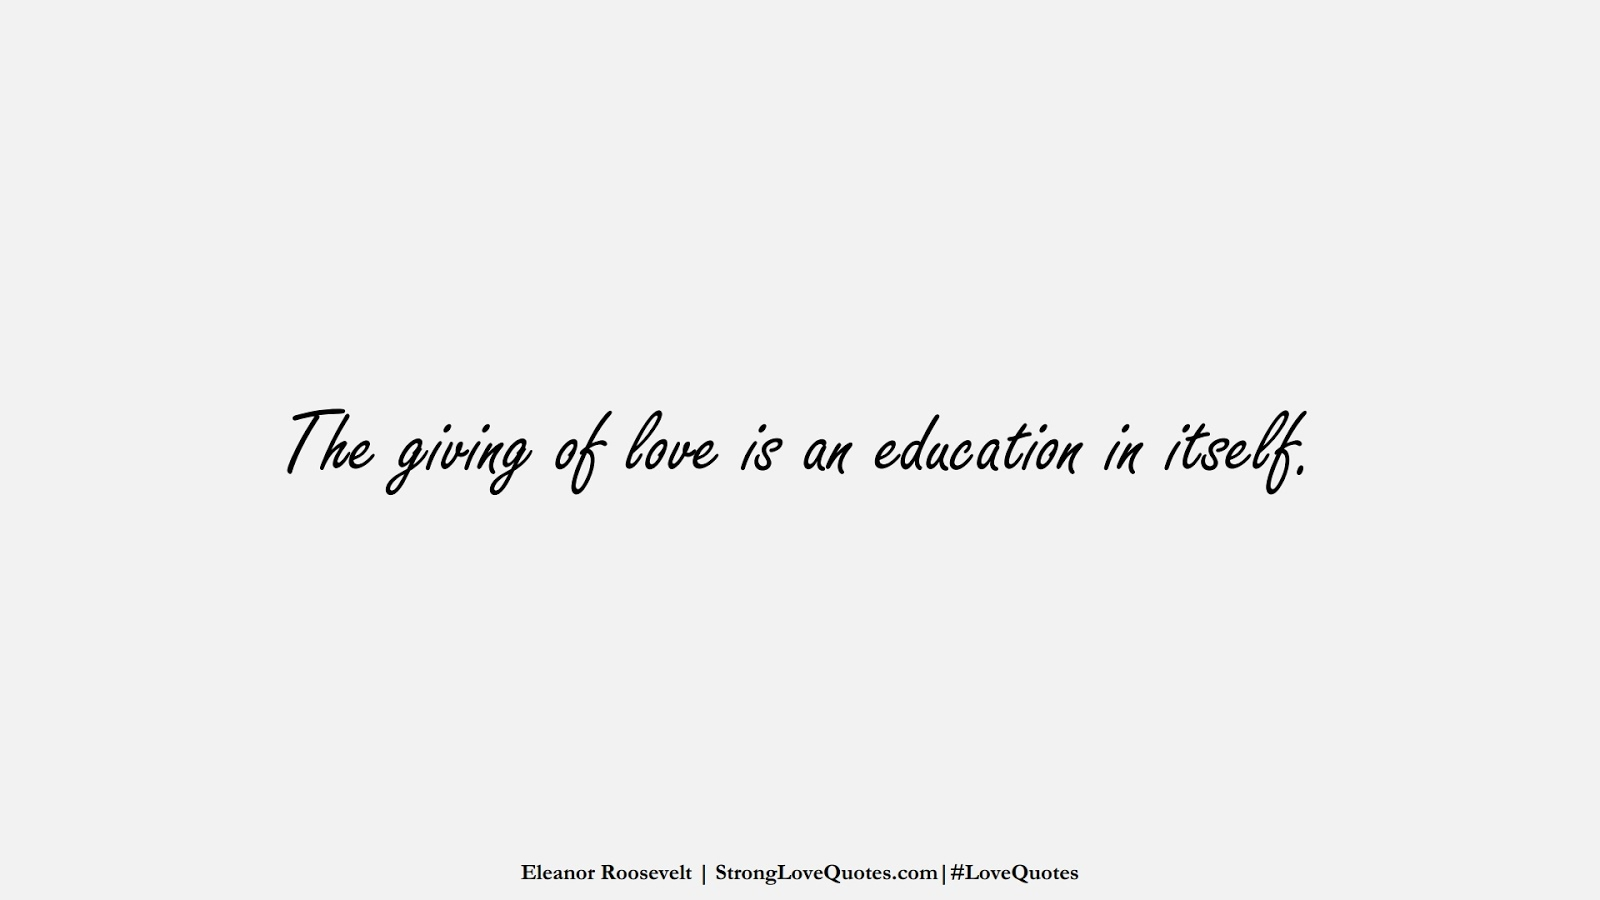 The giving of love is an education in itself. (Eleanor Roosevelt);  #LoveQuotes